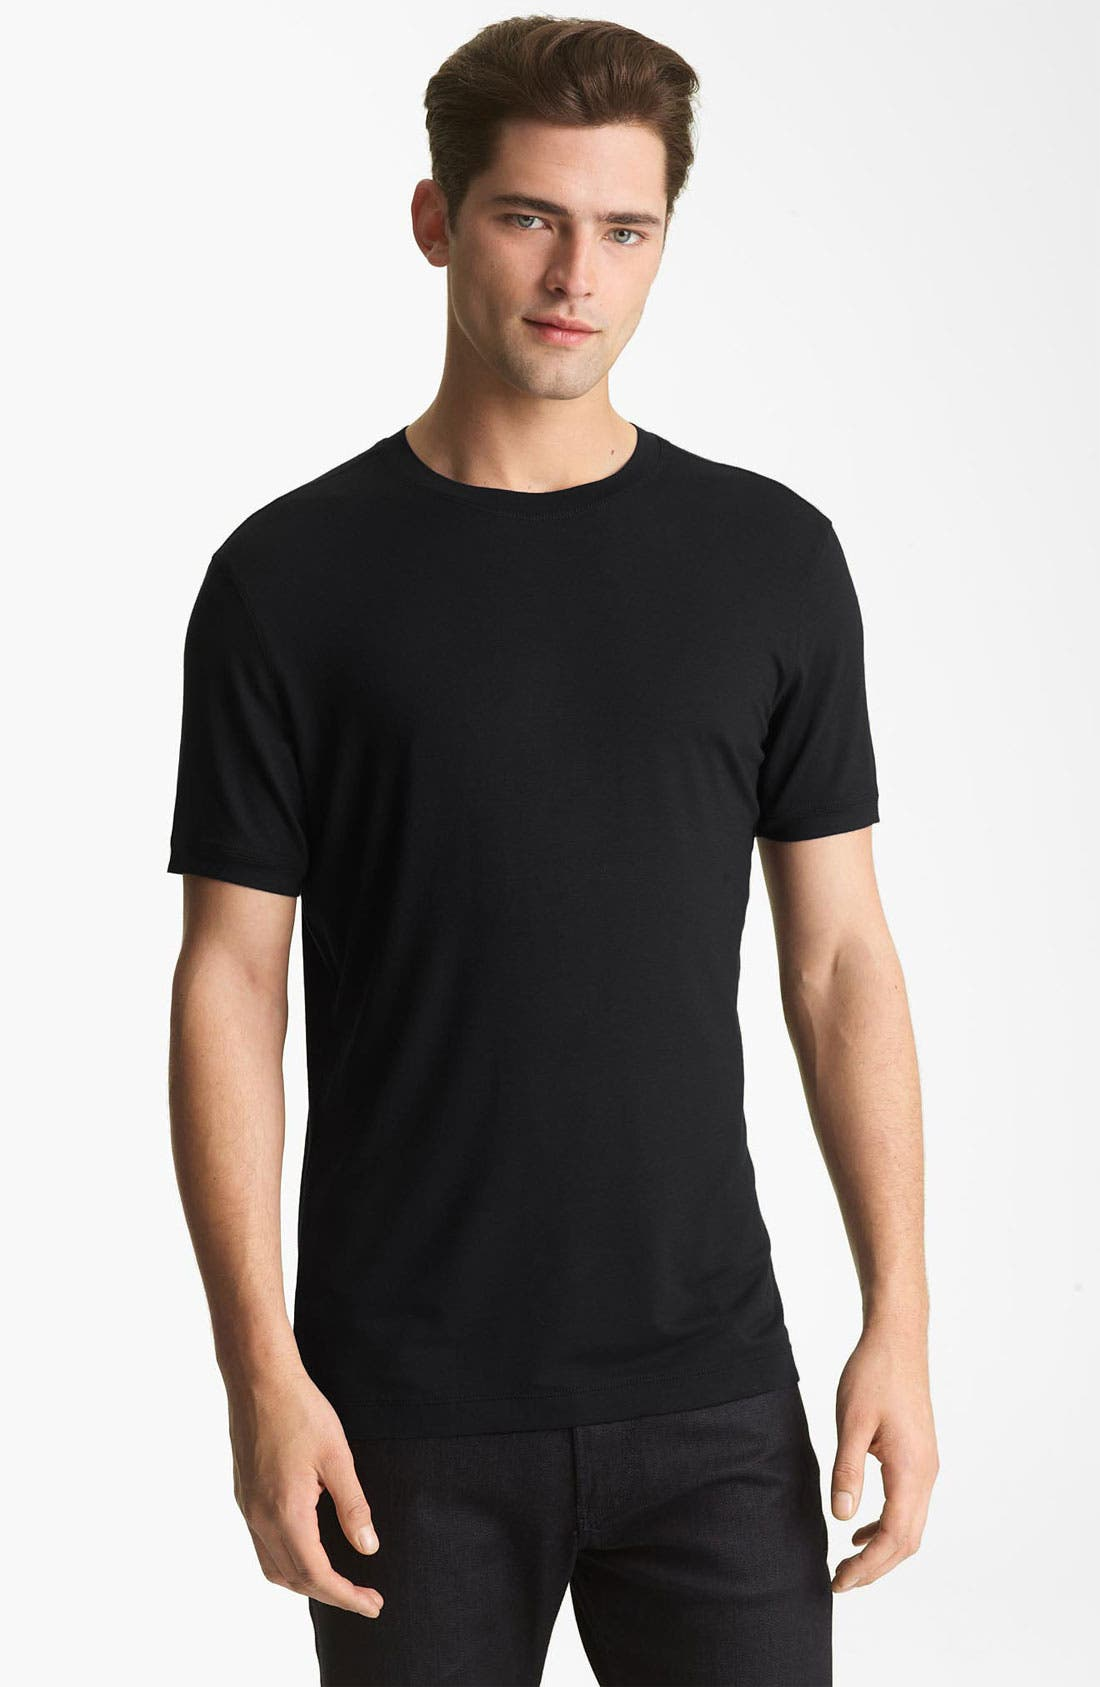 Alternate Image 1 Selected - Armani Collezioni Jersey Trim Fit T-Shirt